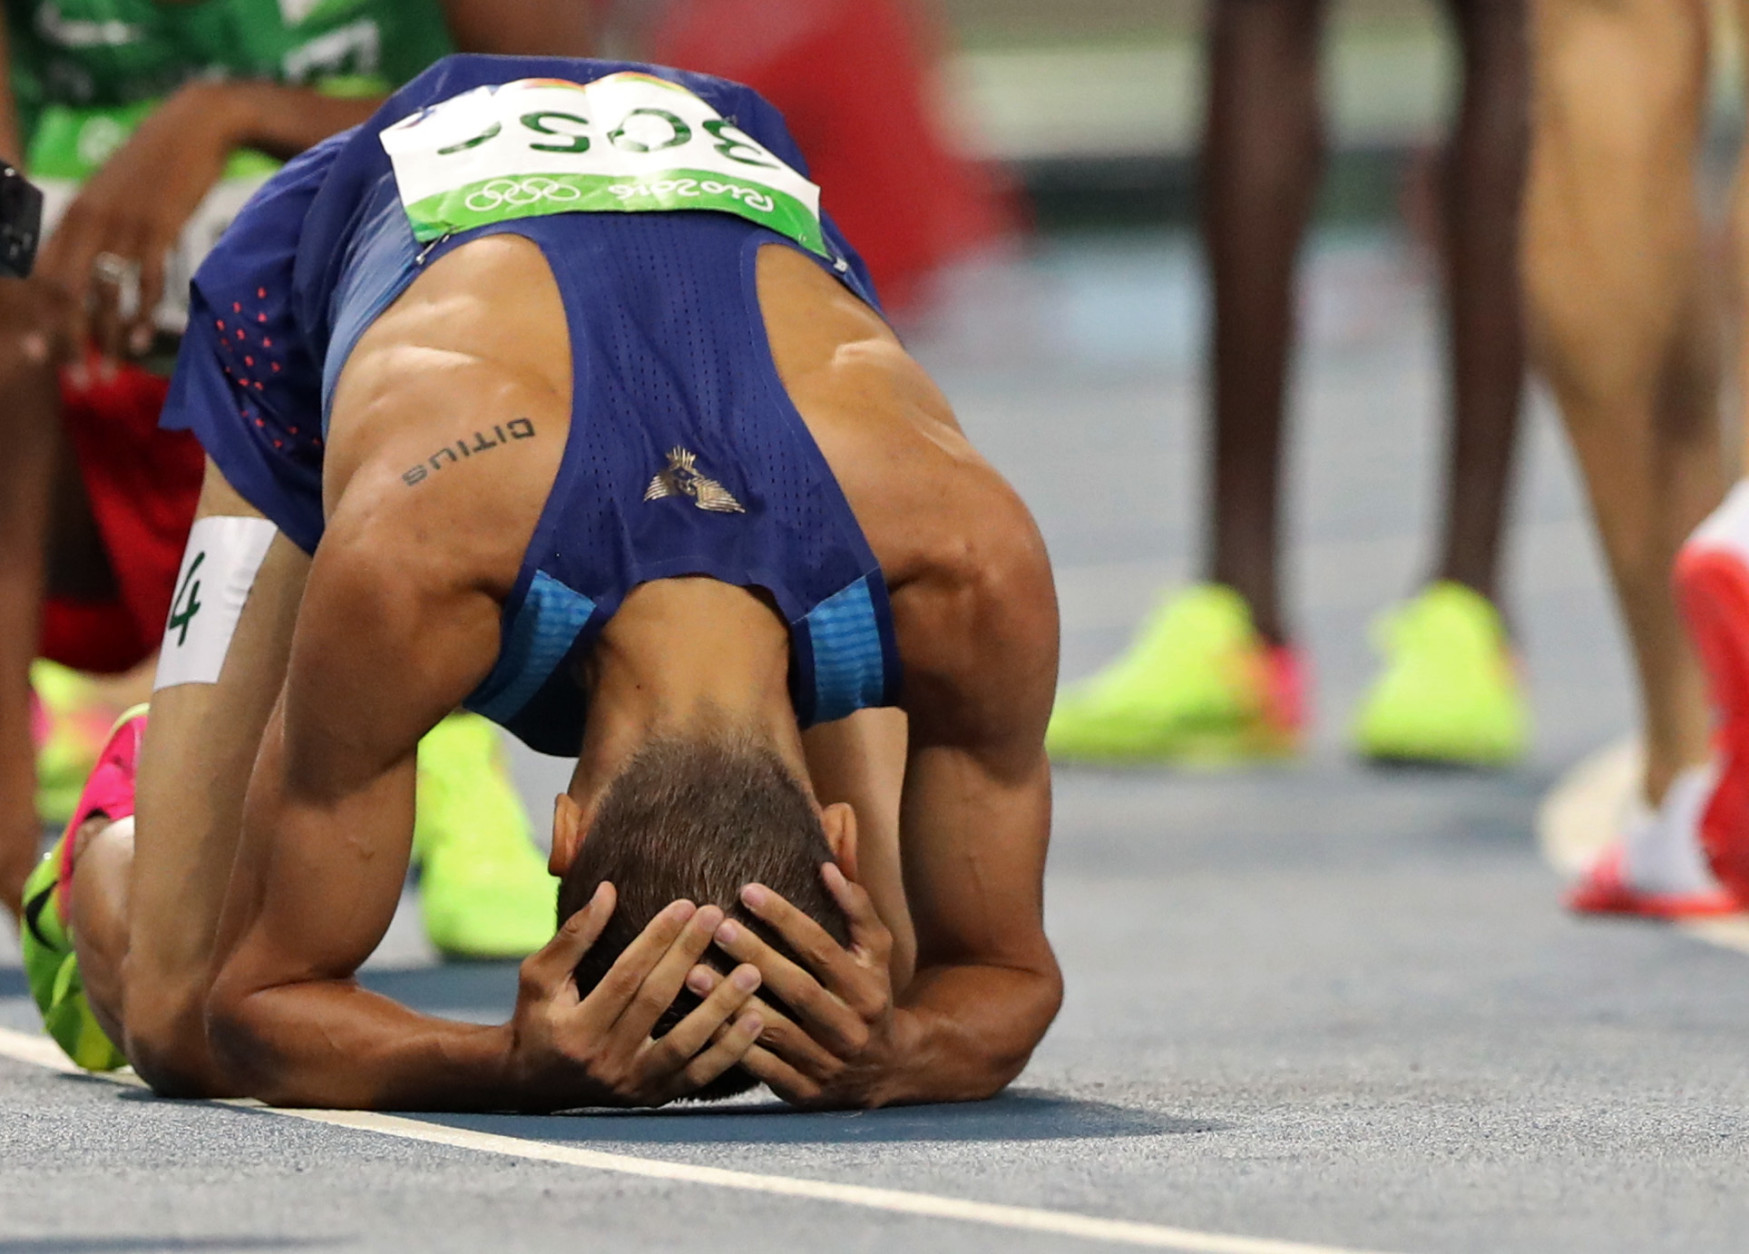 United States' Matthew Centrowitz reacts after winning the men's 1500-meter final during the athletics competition at the Summer Olympics at Olympic stadium in Rio de Janeiro, Brazil, Saturday, Aug. 20, 2016. (AP Photo/Lee Jin-man)